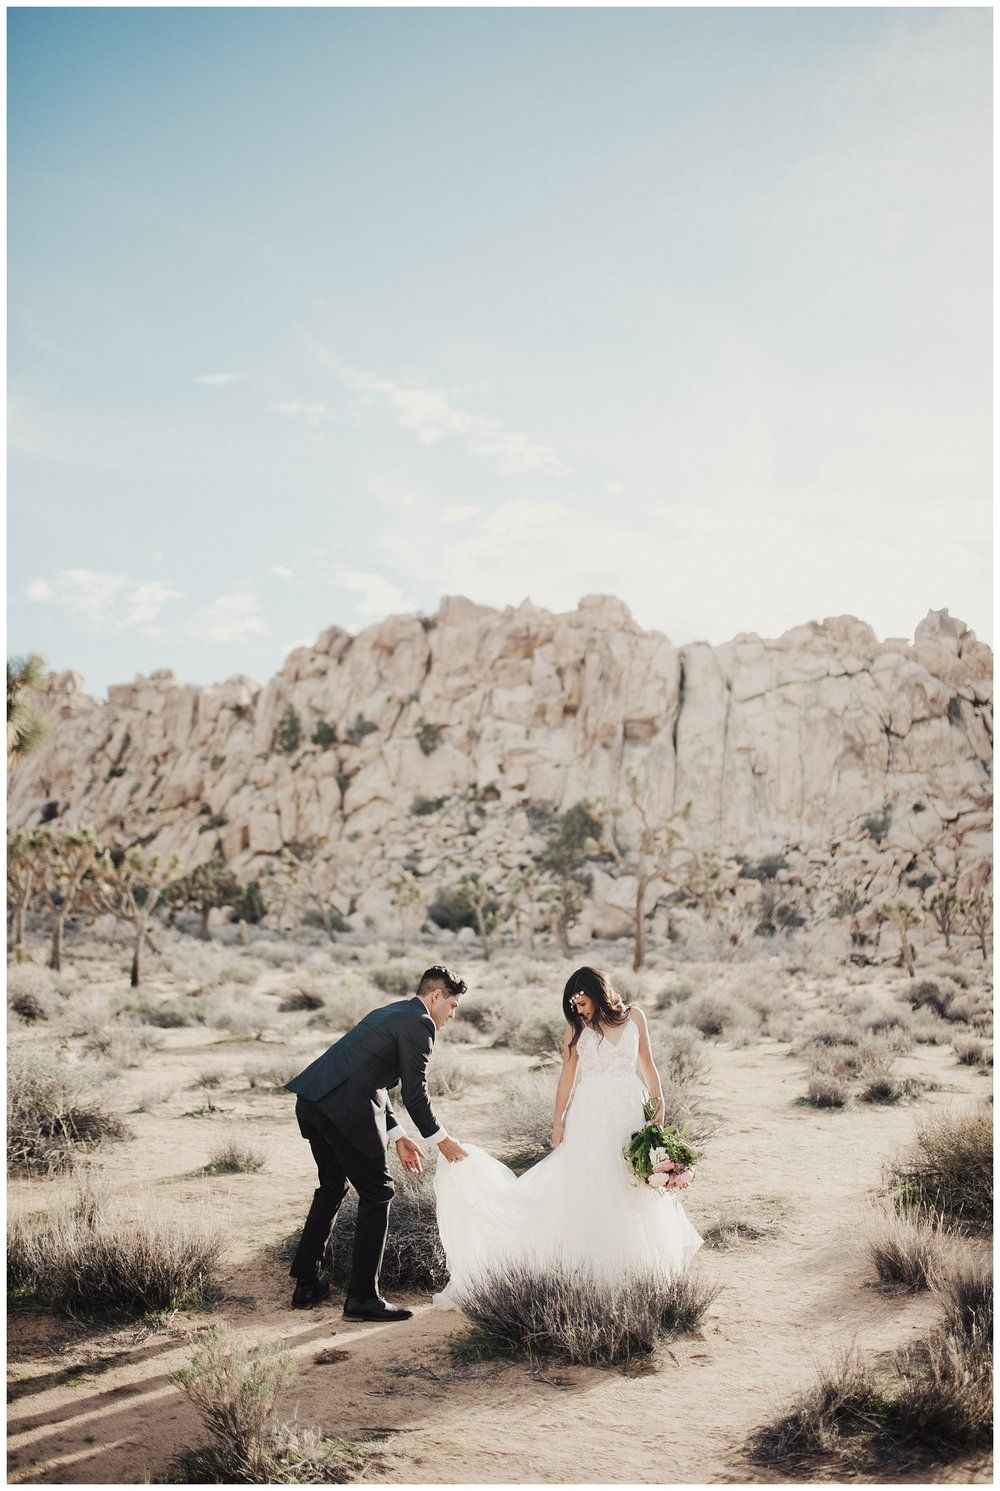 Bridal Session in Joshua Tree California